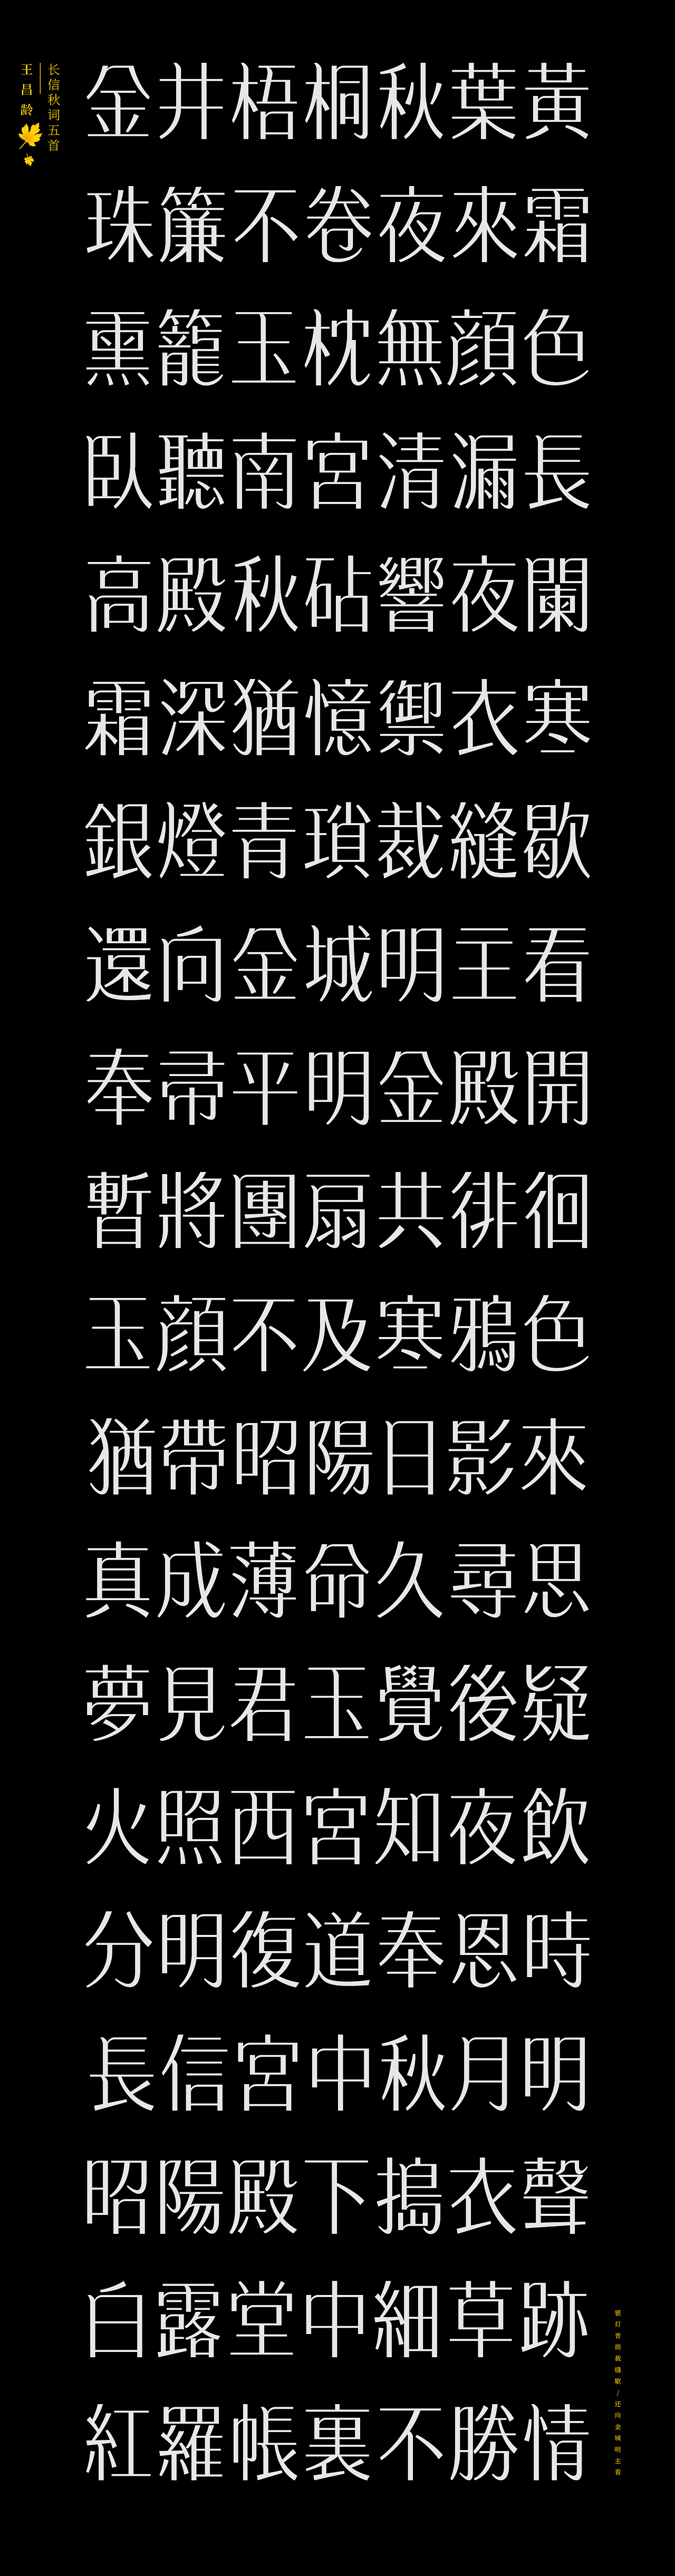 Chinese Creative Font Design-Font design of five ancient poems and writing of the whole poem